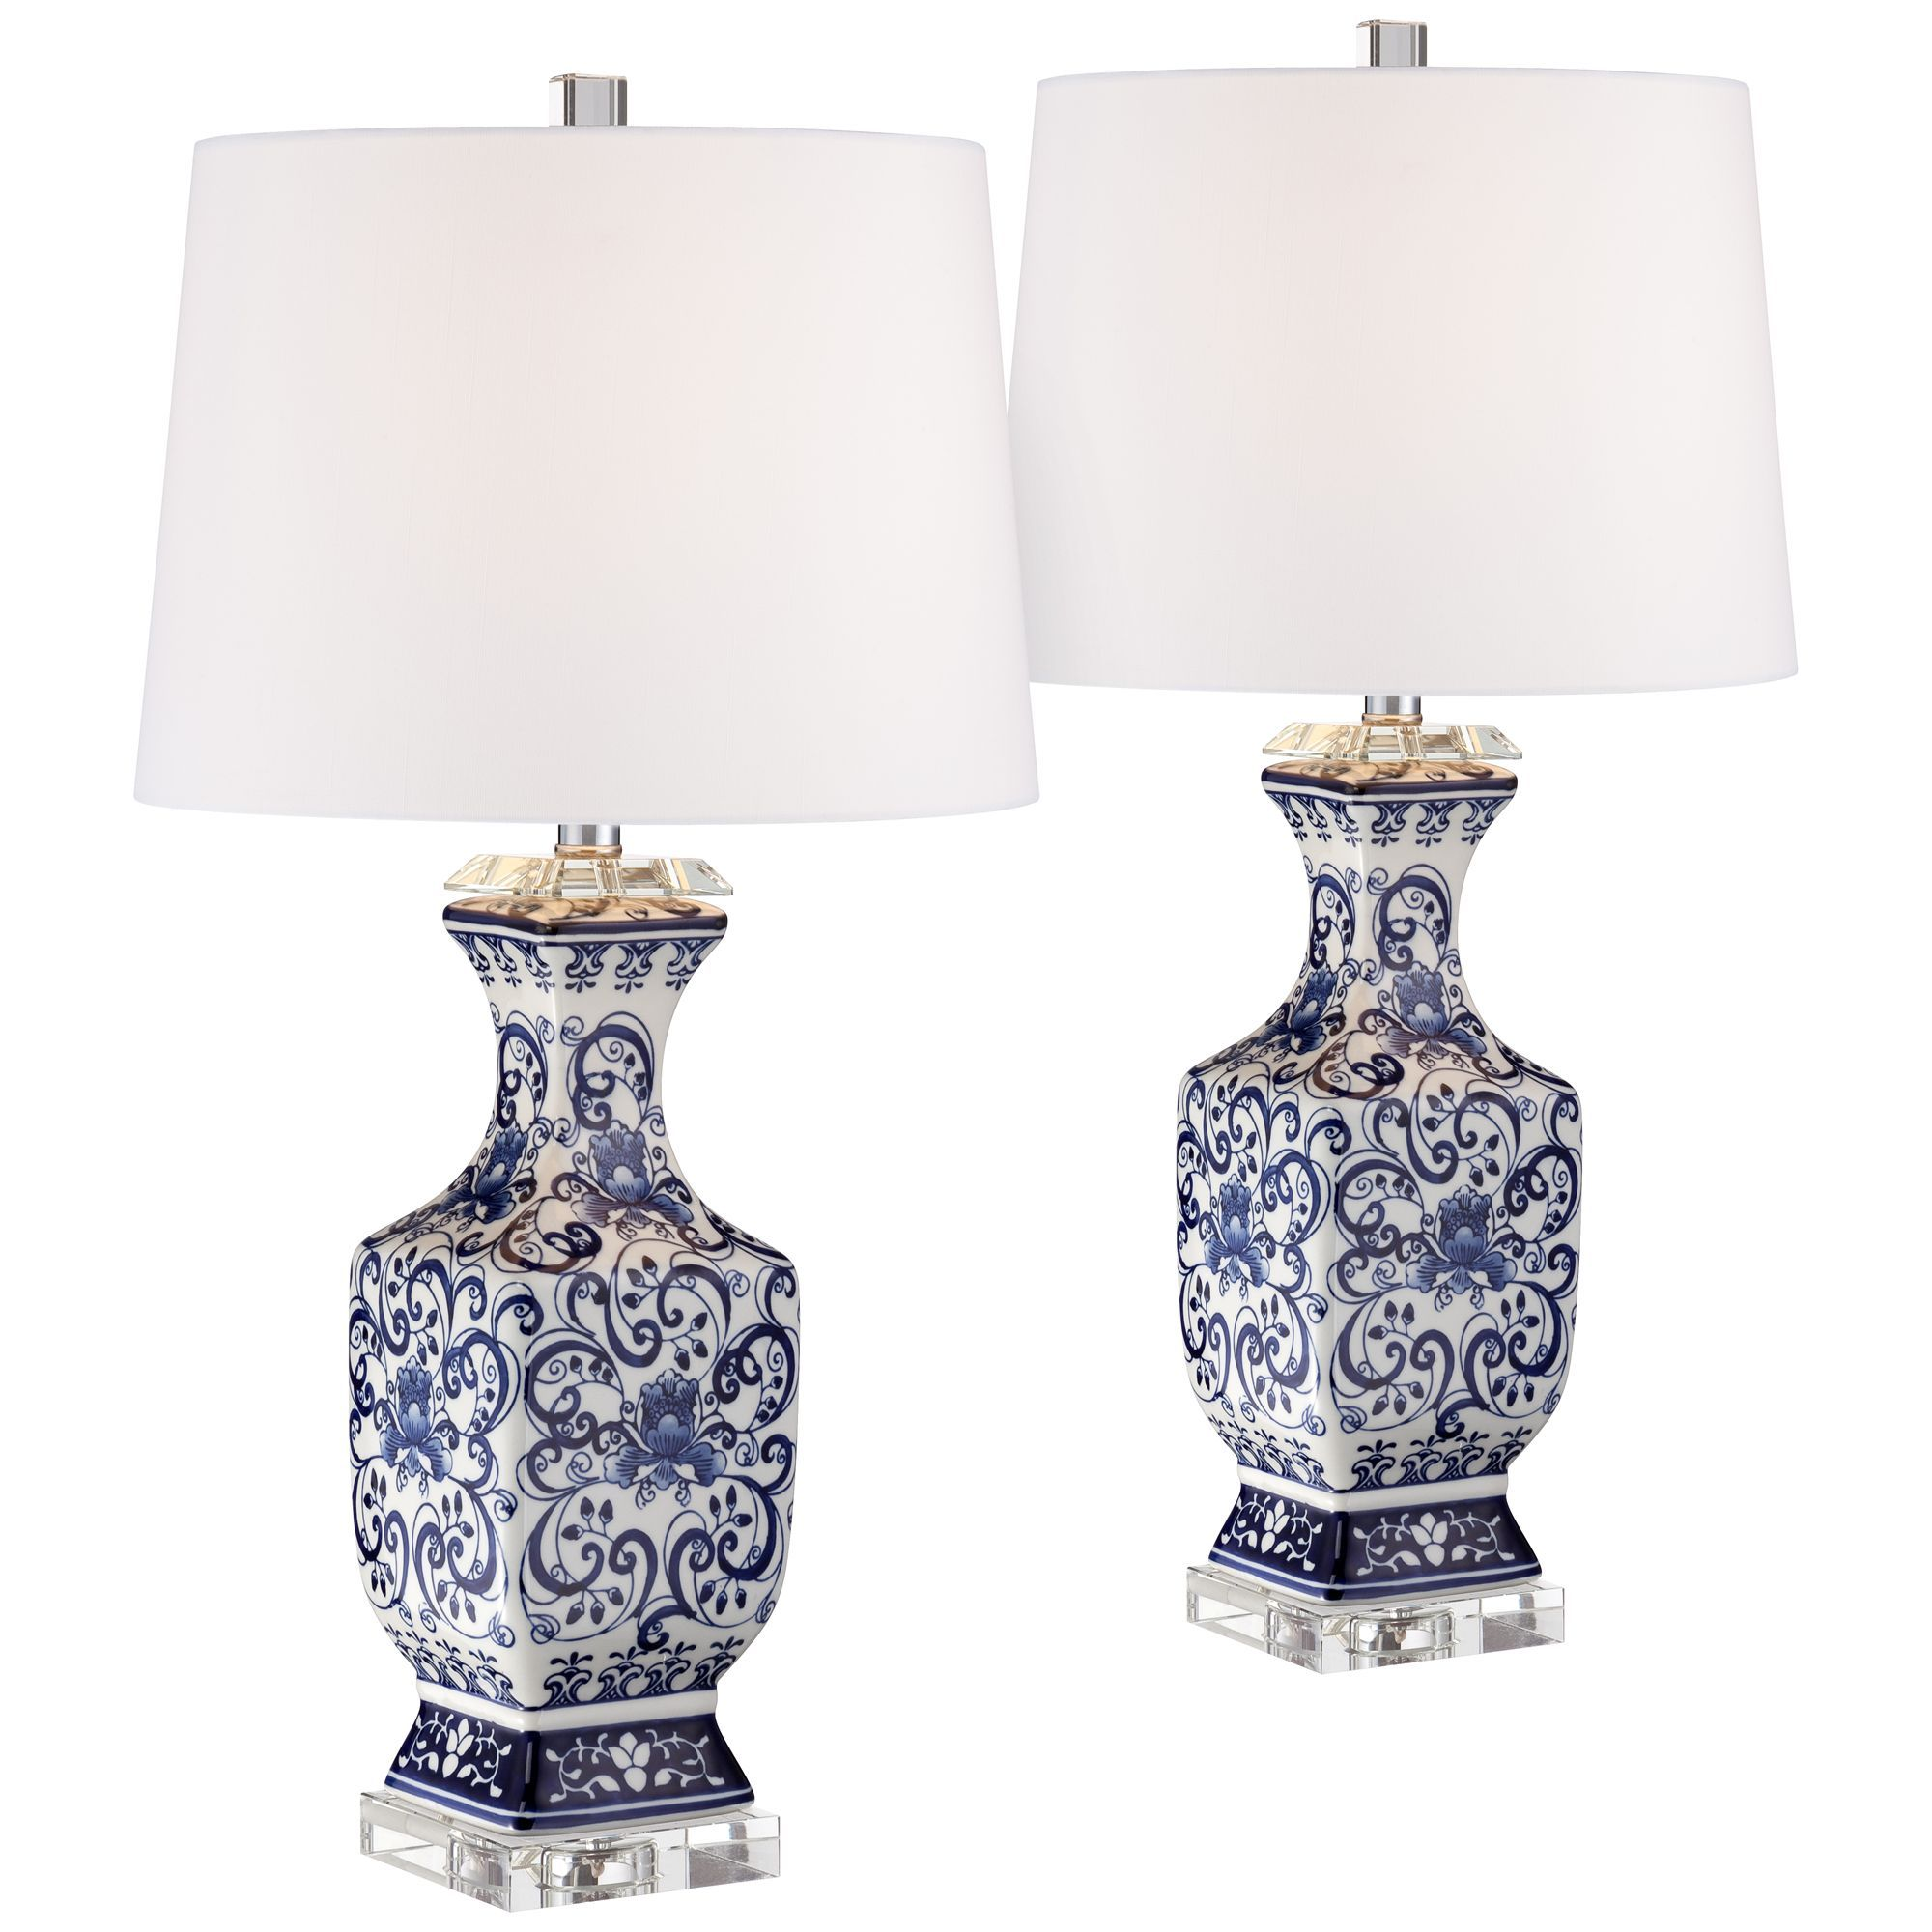 Blue And White Floral Porcelain Temple Jar Table Lamp G7072 Lamps Plus Jar Table Lamp Lamp Blue And White